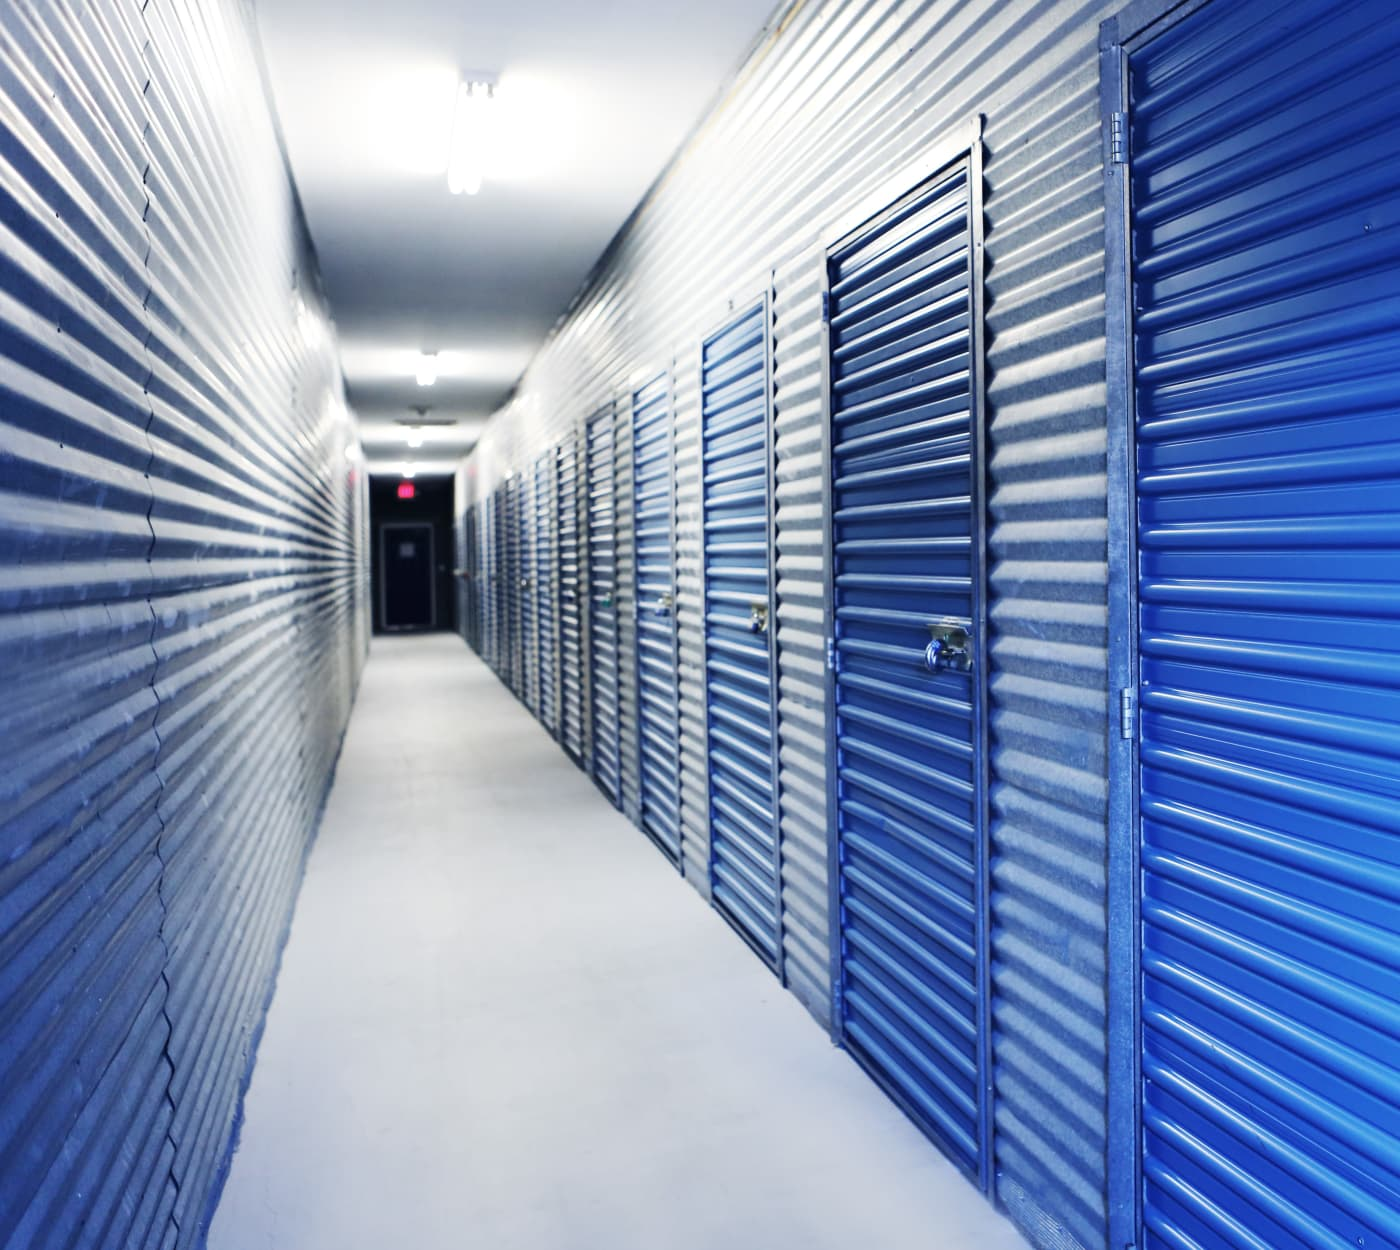 Ground-floor units at Midgard Self Storage in Cocoa, Florida